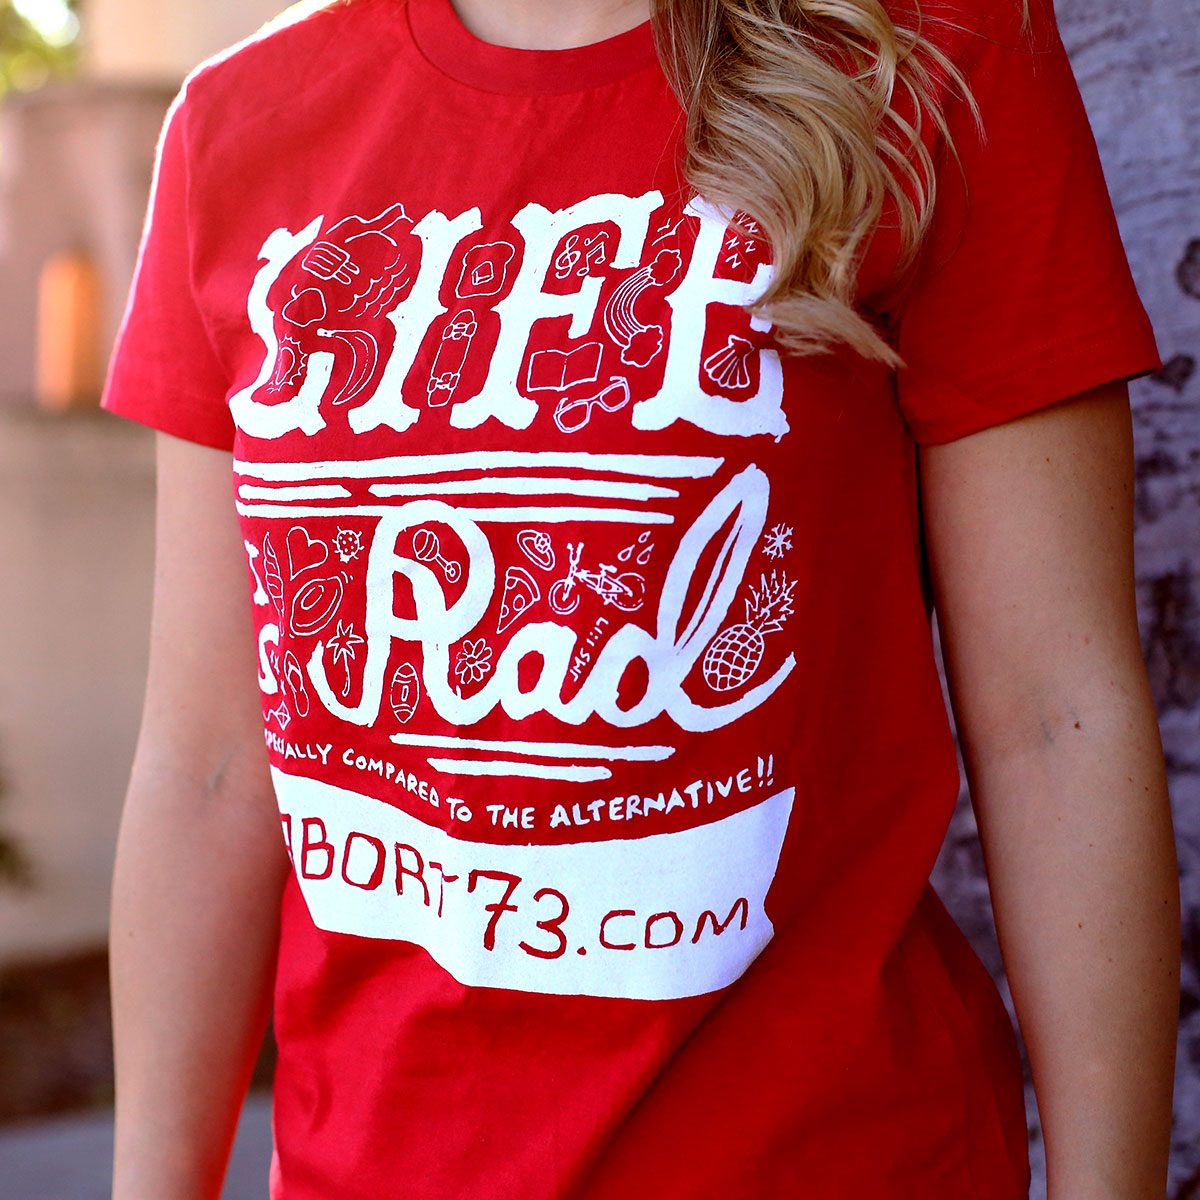 Life is Rad (Abort73 Girls T-shirt)